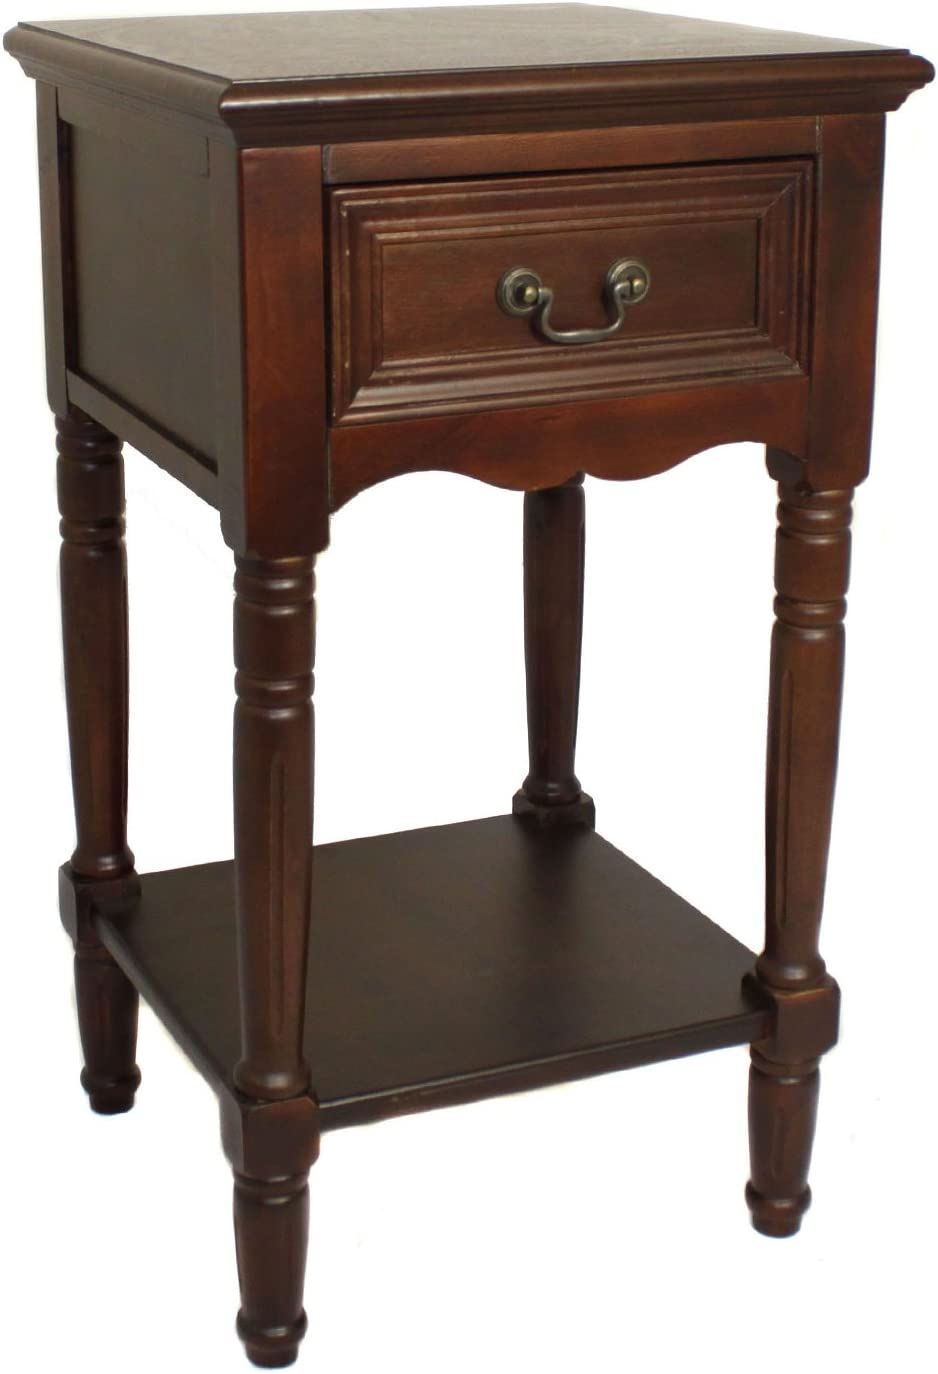 Urban Designs Solid Wood Night Stand Table, Dark Brown